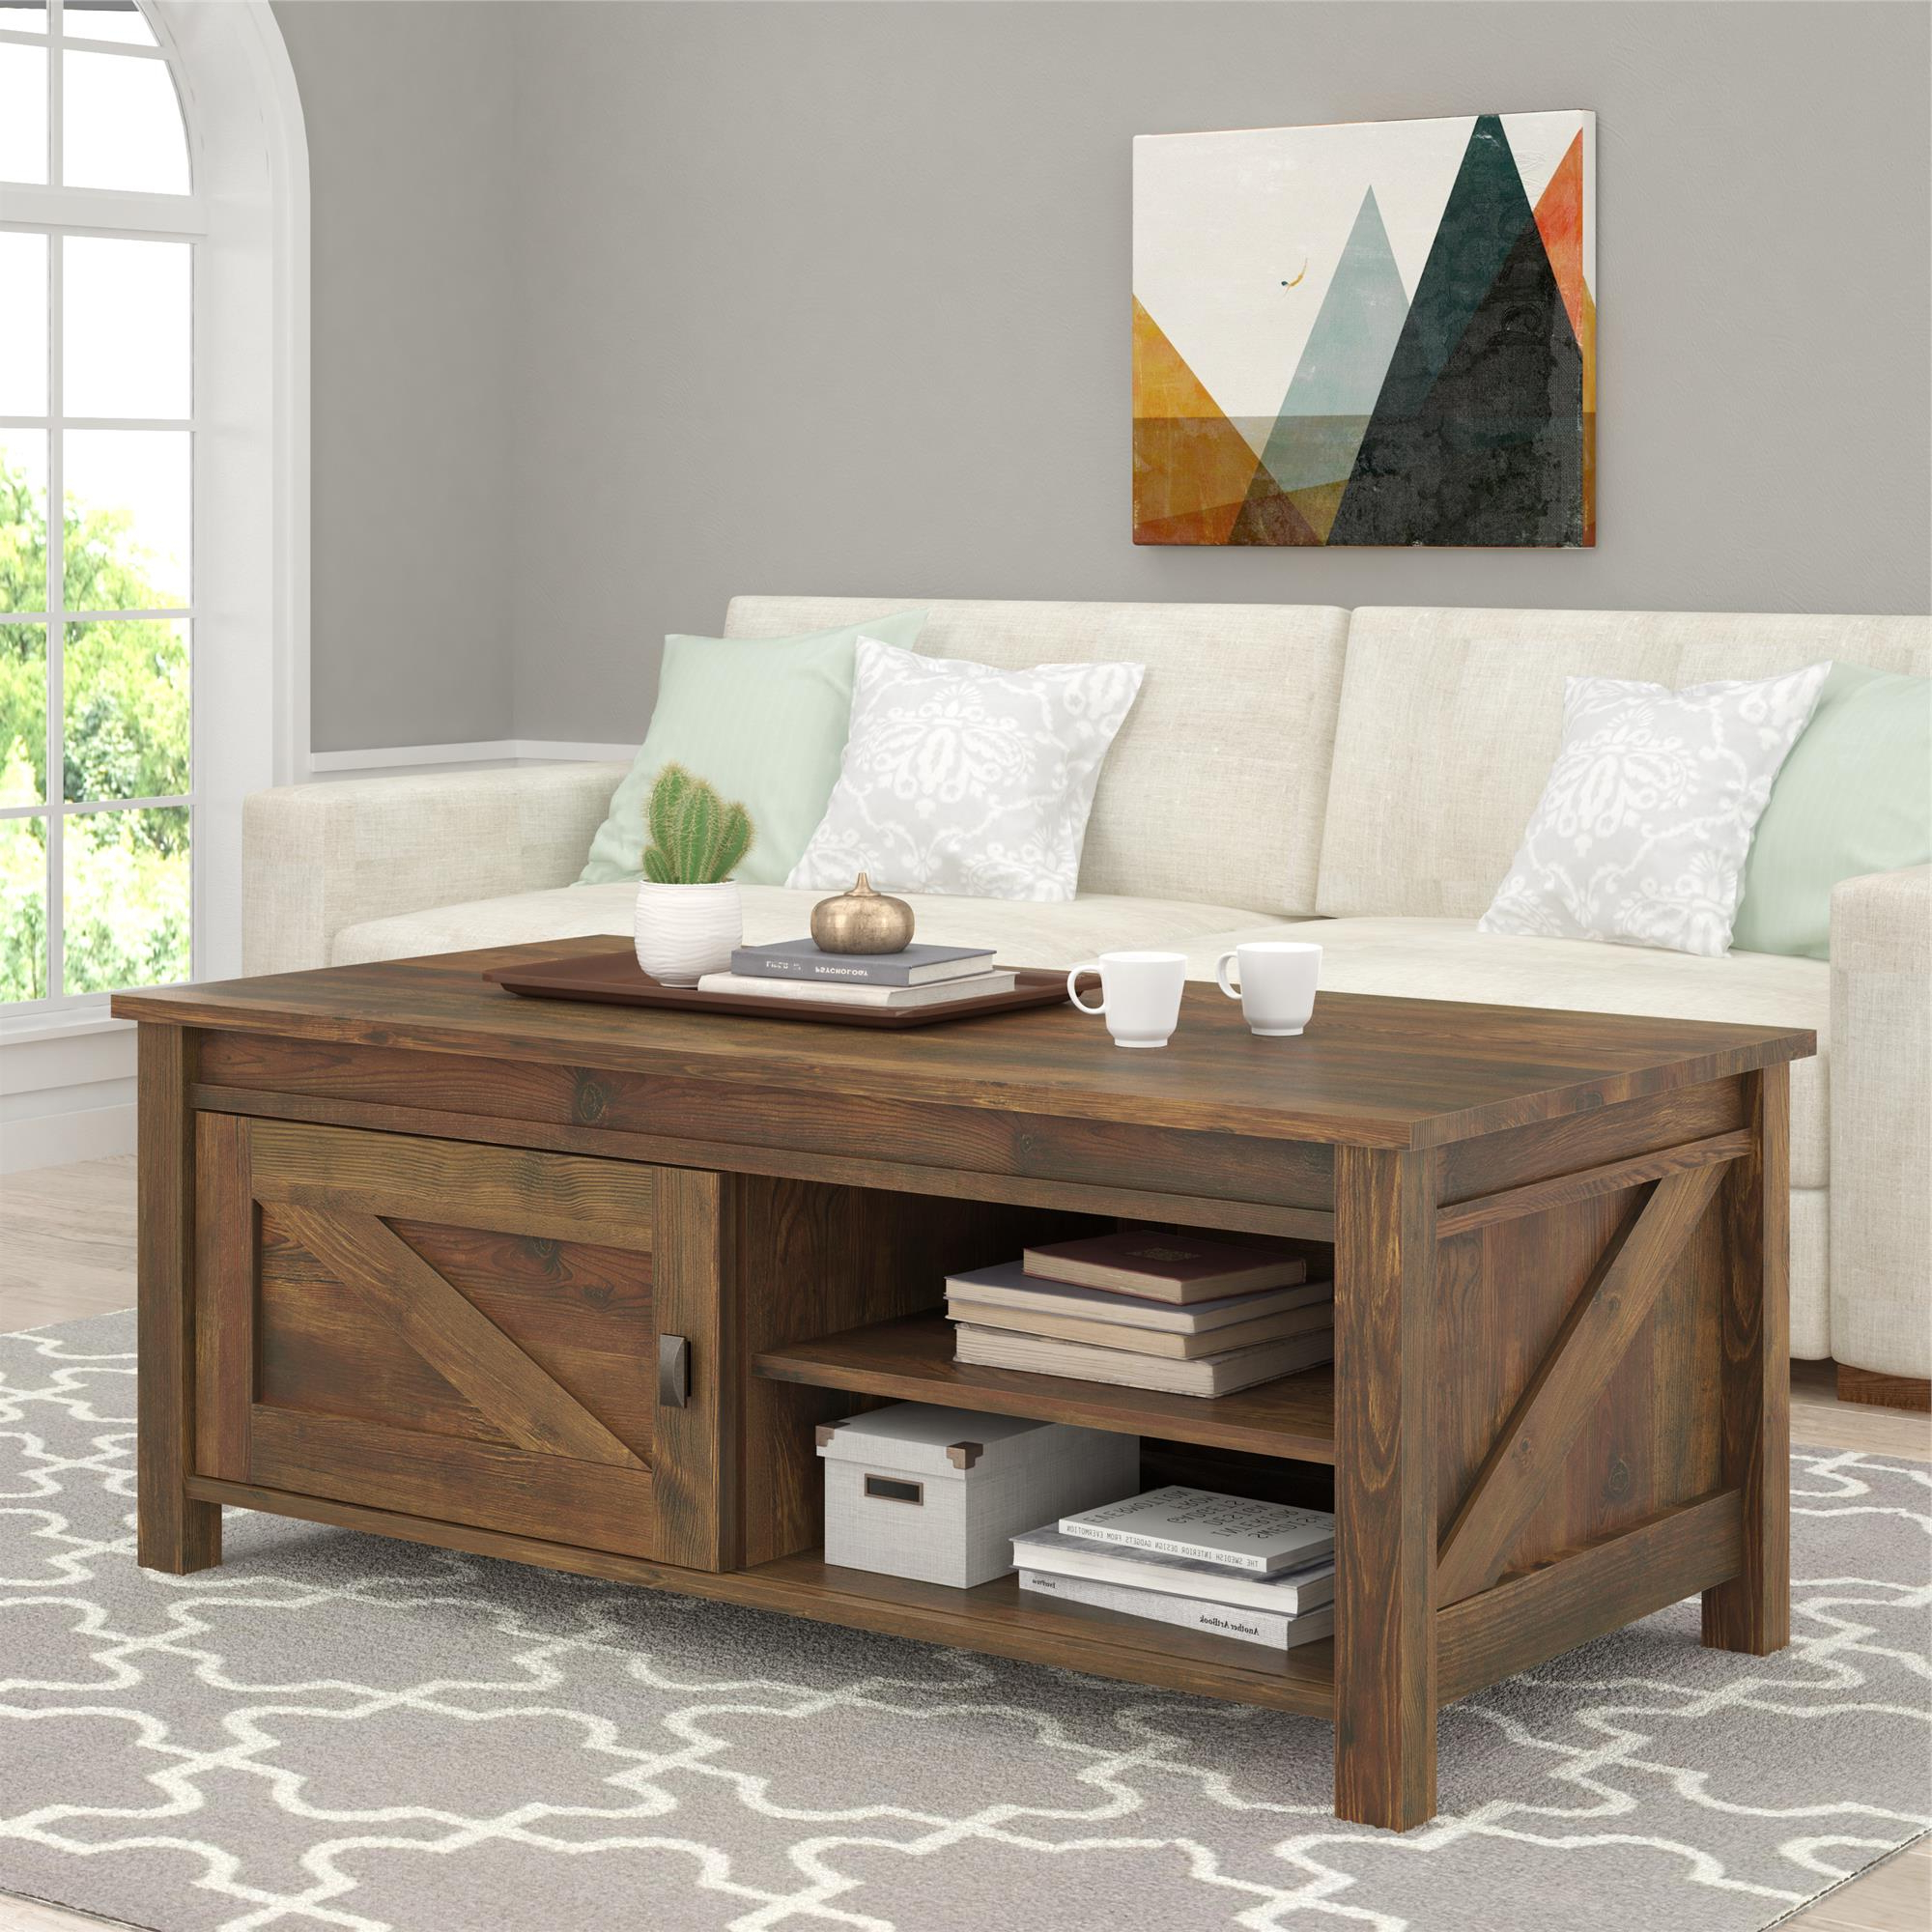 Farmington Coffee Table, Rustic Pertaining To Rustic Coffee Table And Tv Stand (View 5 of 20)